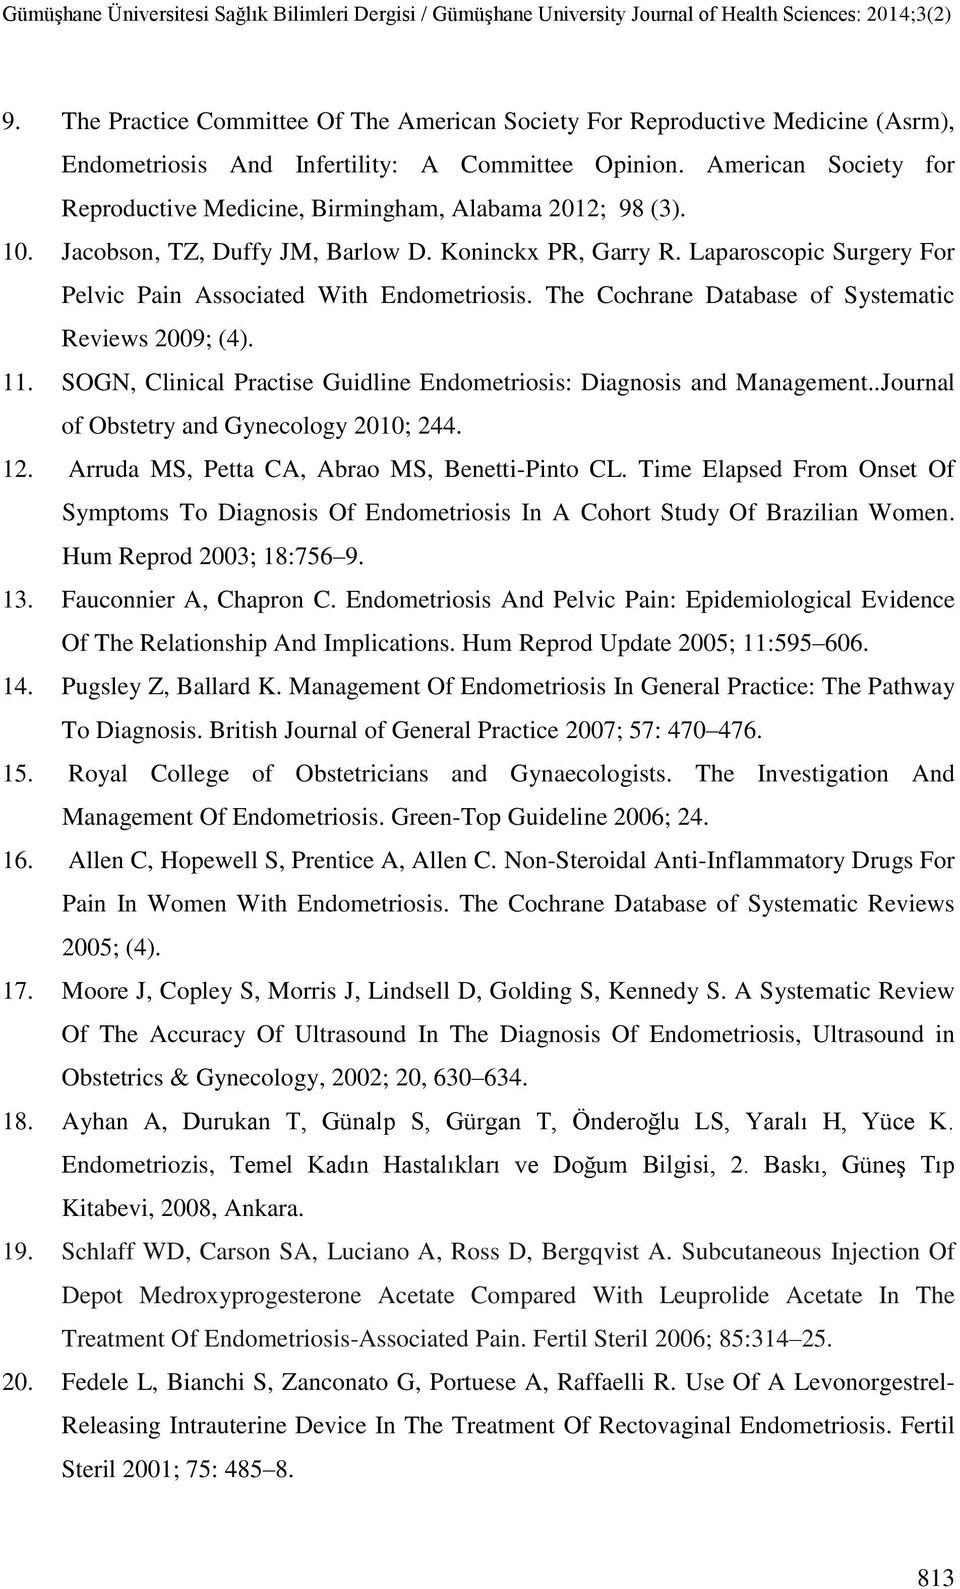 Laparoscopic Surgery For Pelvic Pain Associated With Endometriosis. The Cochrane Database of Systematic Reviews 2009; (4). 11. SOGN, Clinical Practise Guidline Endometriosis: Diagnosis and Management.